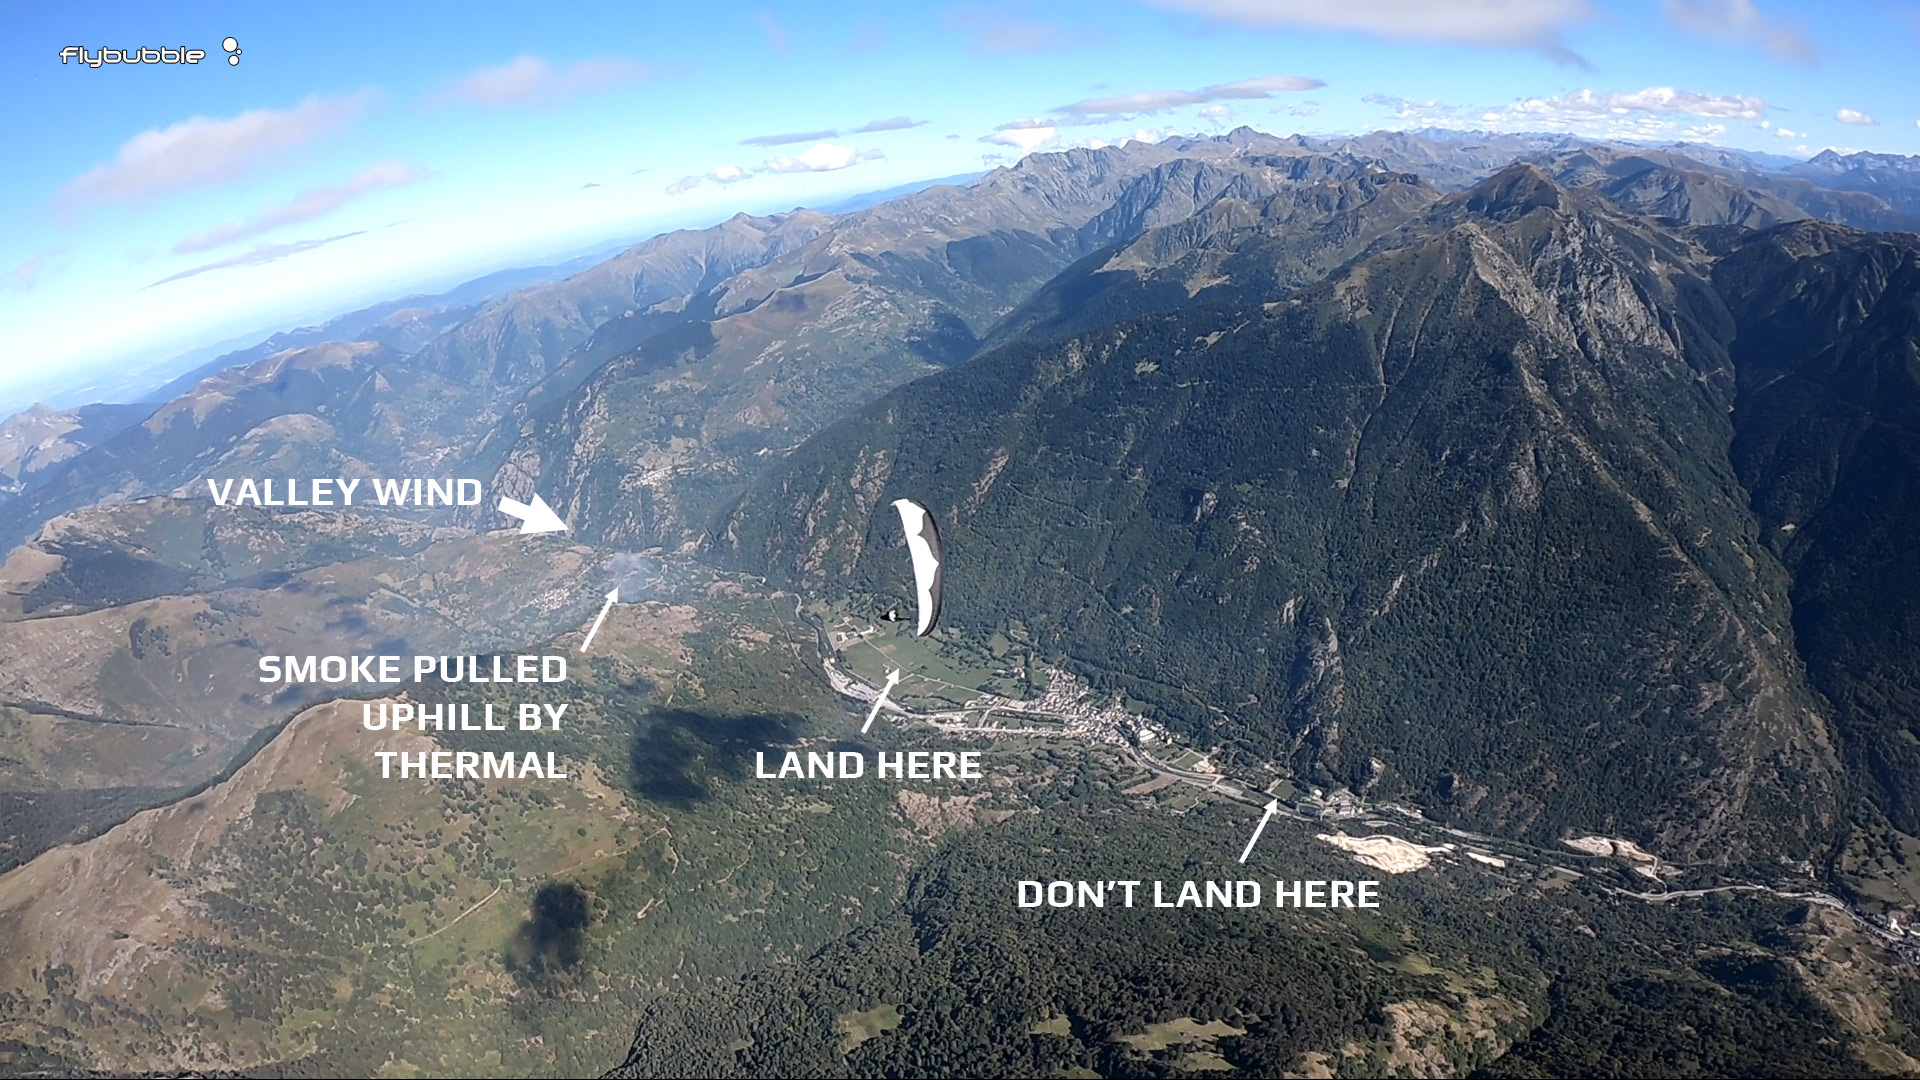 Landing safely in a valley wind: safe option